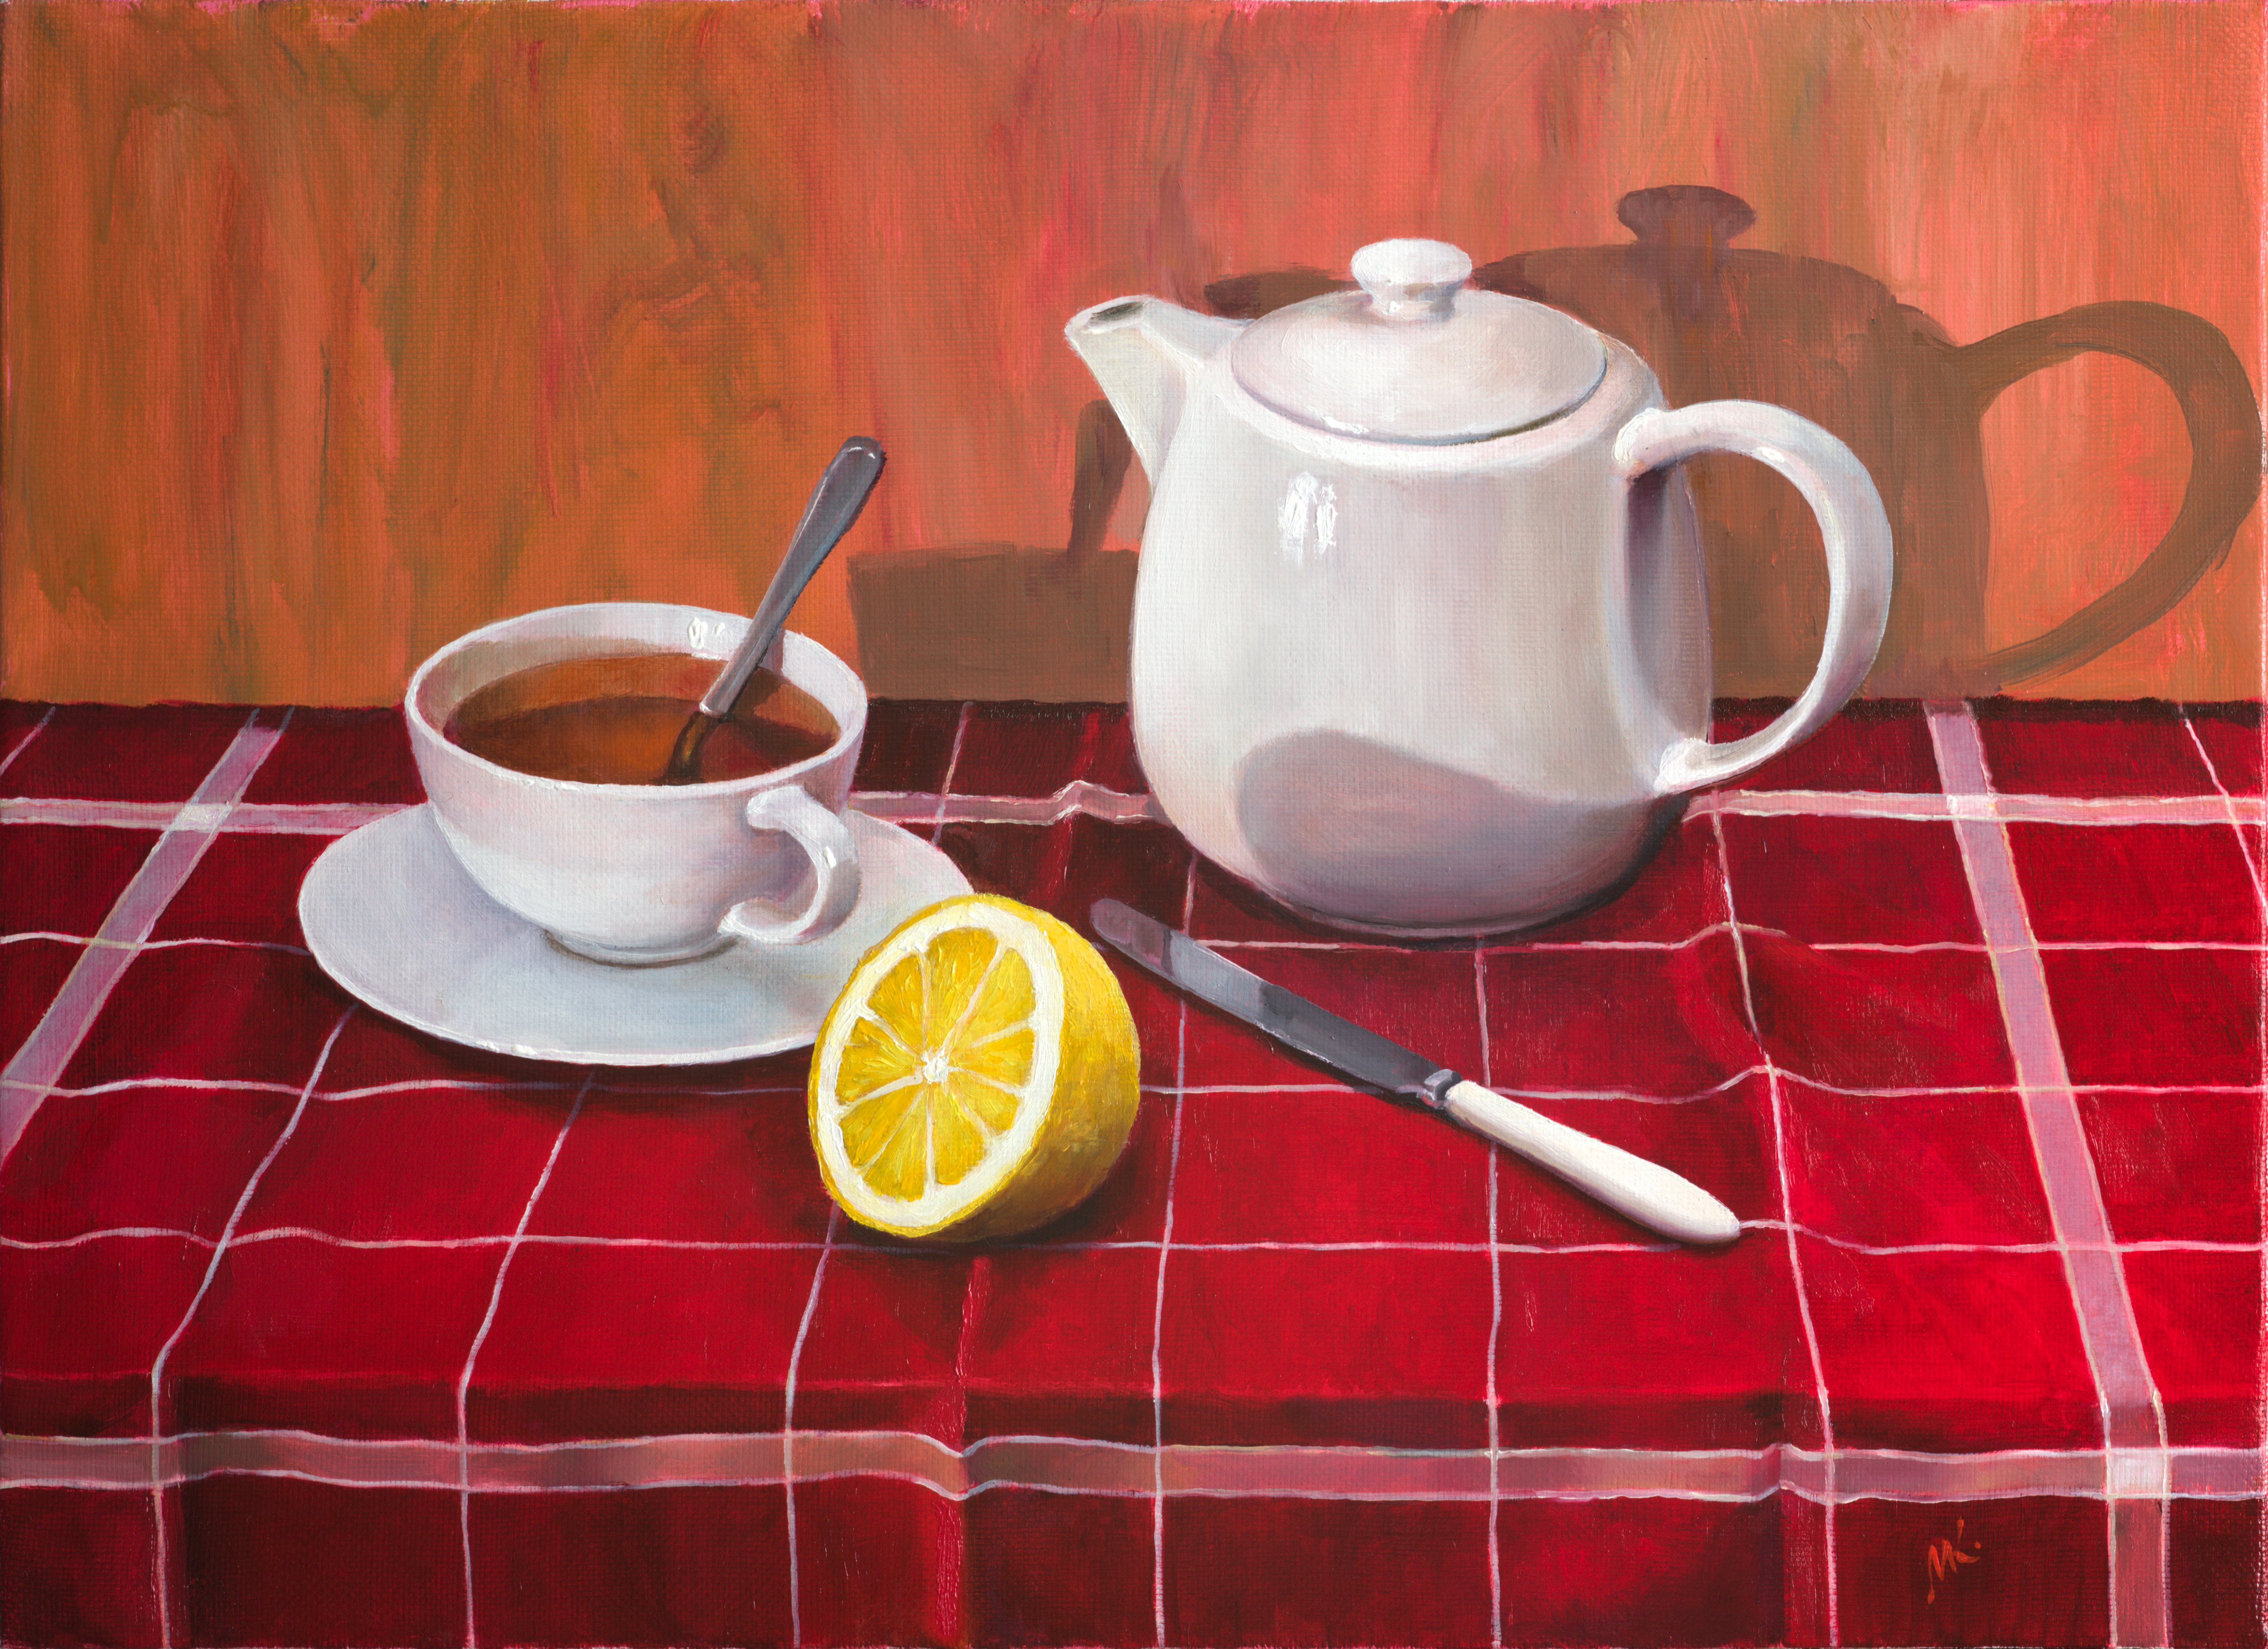 Mikhail Velavok; Tea With Lemon comp 3, 2018, Original Painting Oil, 55 x 40 cm. Artwork description: 241 Original oil painting on stretched canvas. The artwork is being sold unframed. The frame in the additional photo is an example only.tea, lemon, teapot, cup, knife, still life, red, checkered, fold, original...